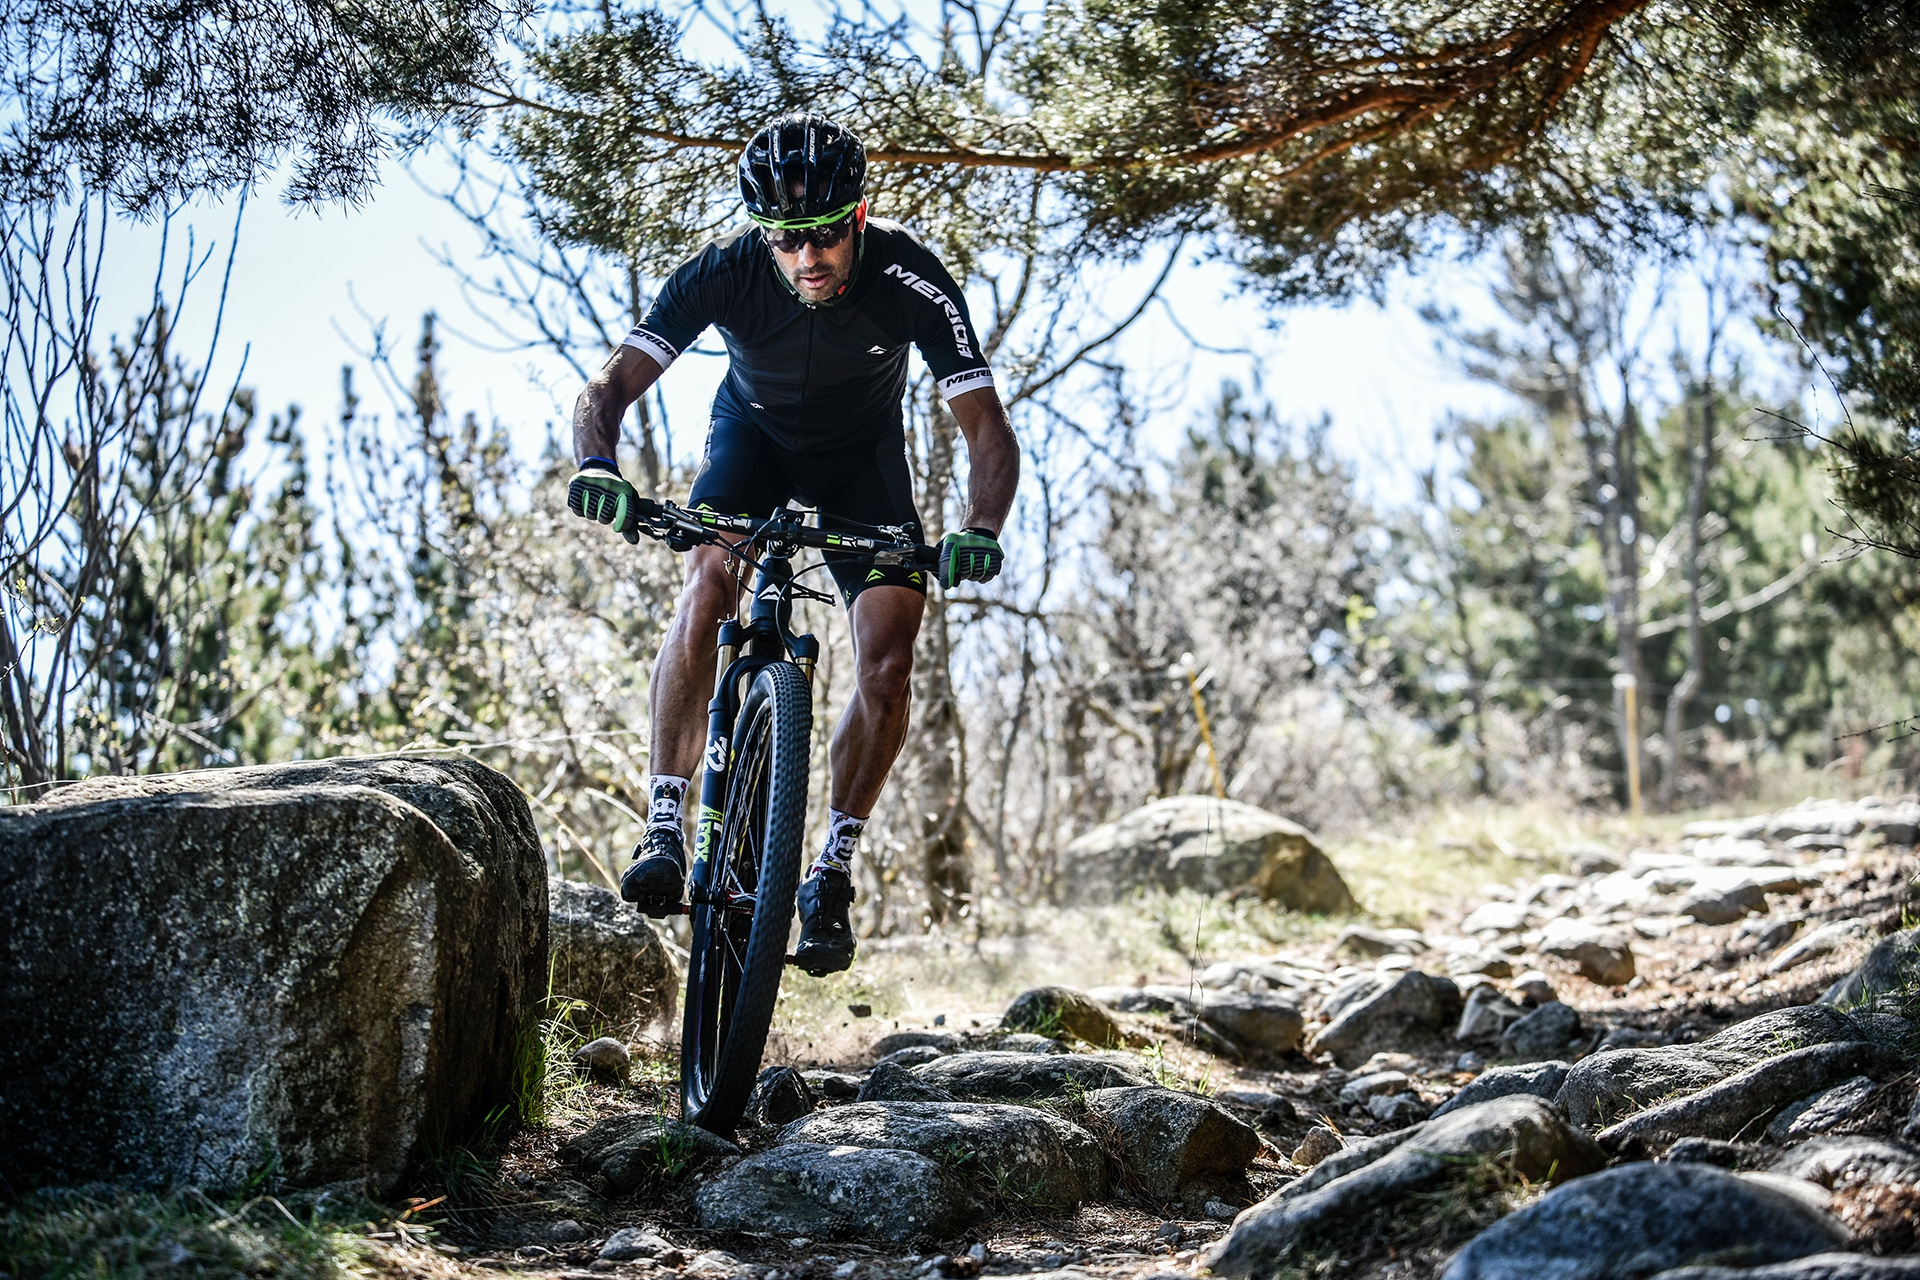 S'obren les inscripcions per GAES Catalunya Bike Race presented by Shimano!